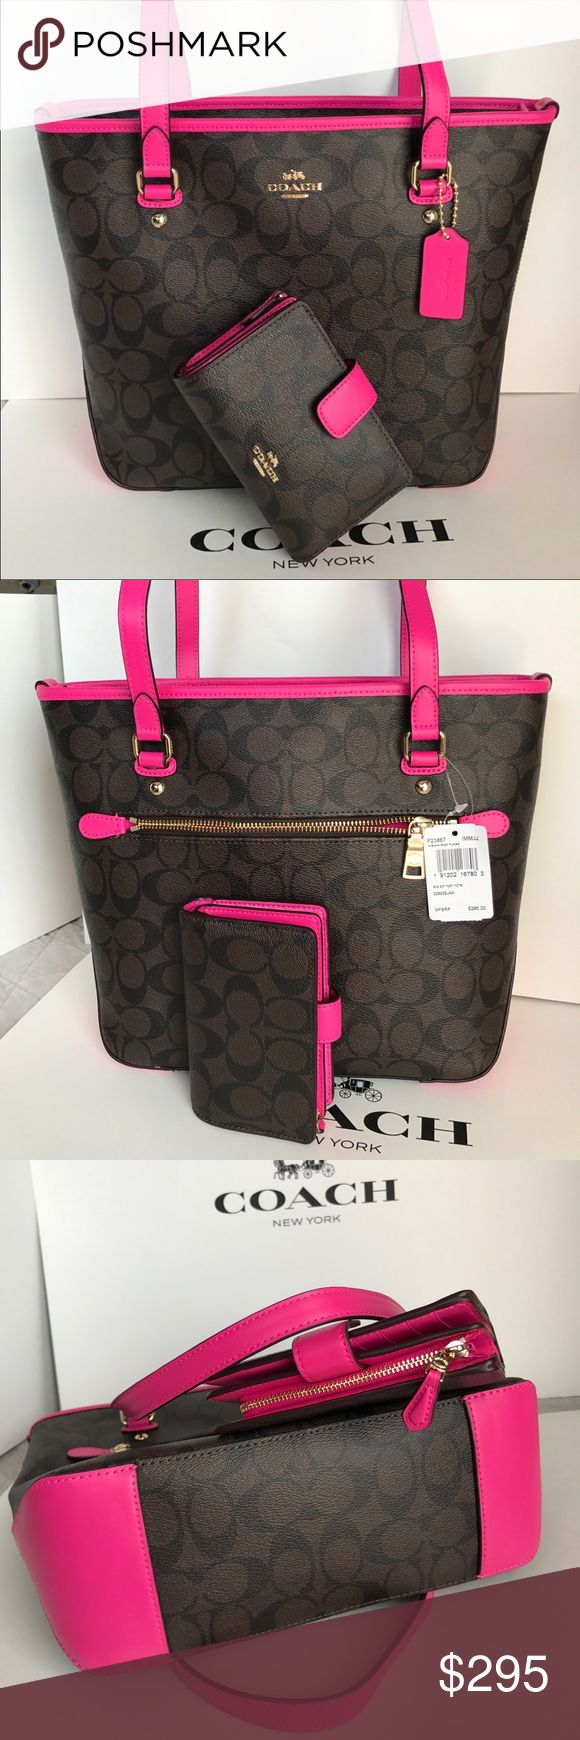 🍀Coach Set🍀 100% Authentic Coach Tote Bag and Wallet, both brand new with tag!.😍😍😍 Coach Bags Shoulder Bags